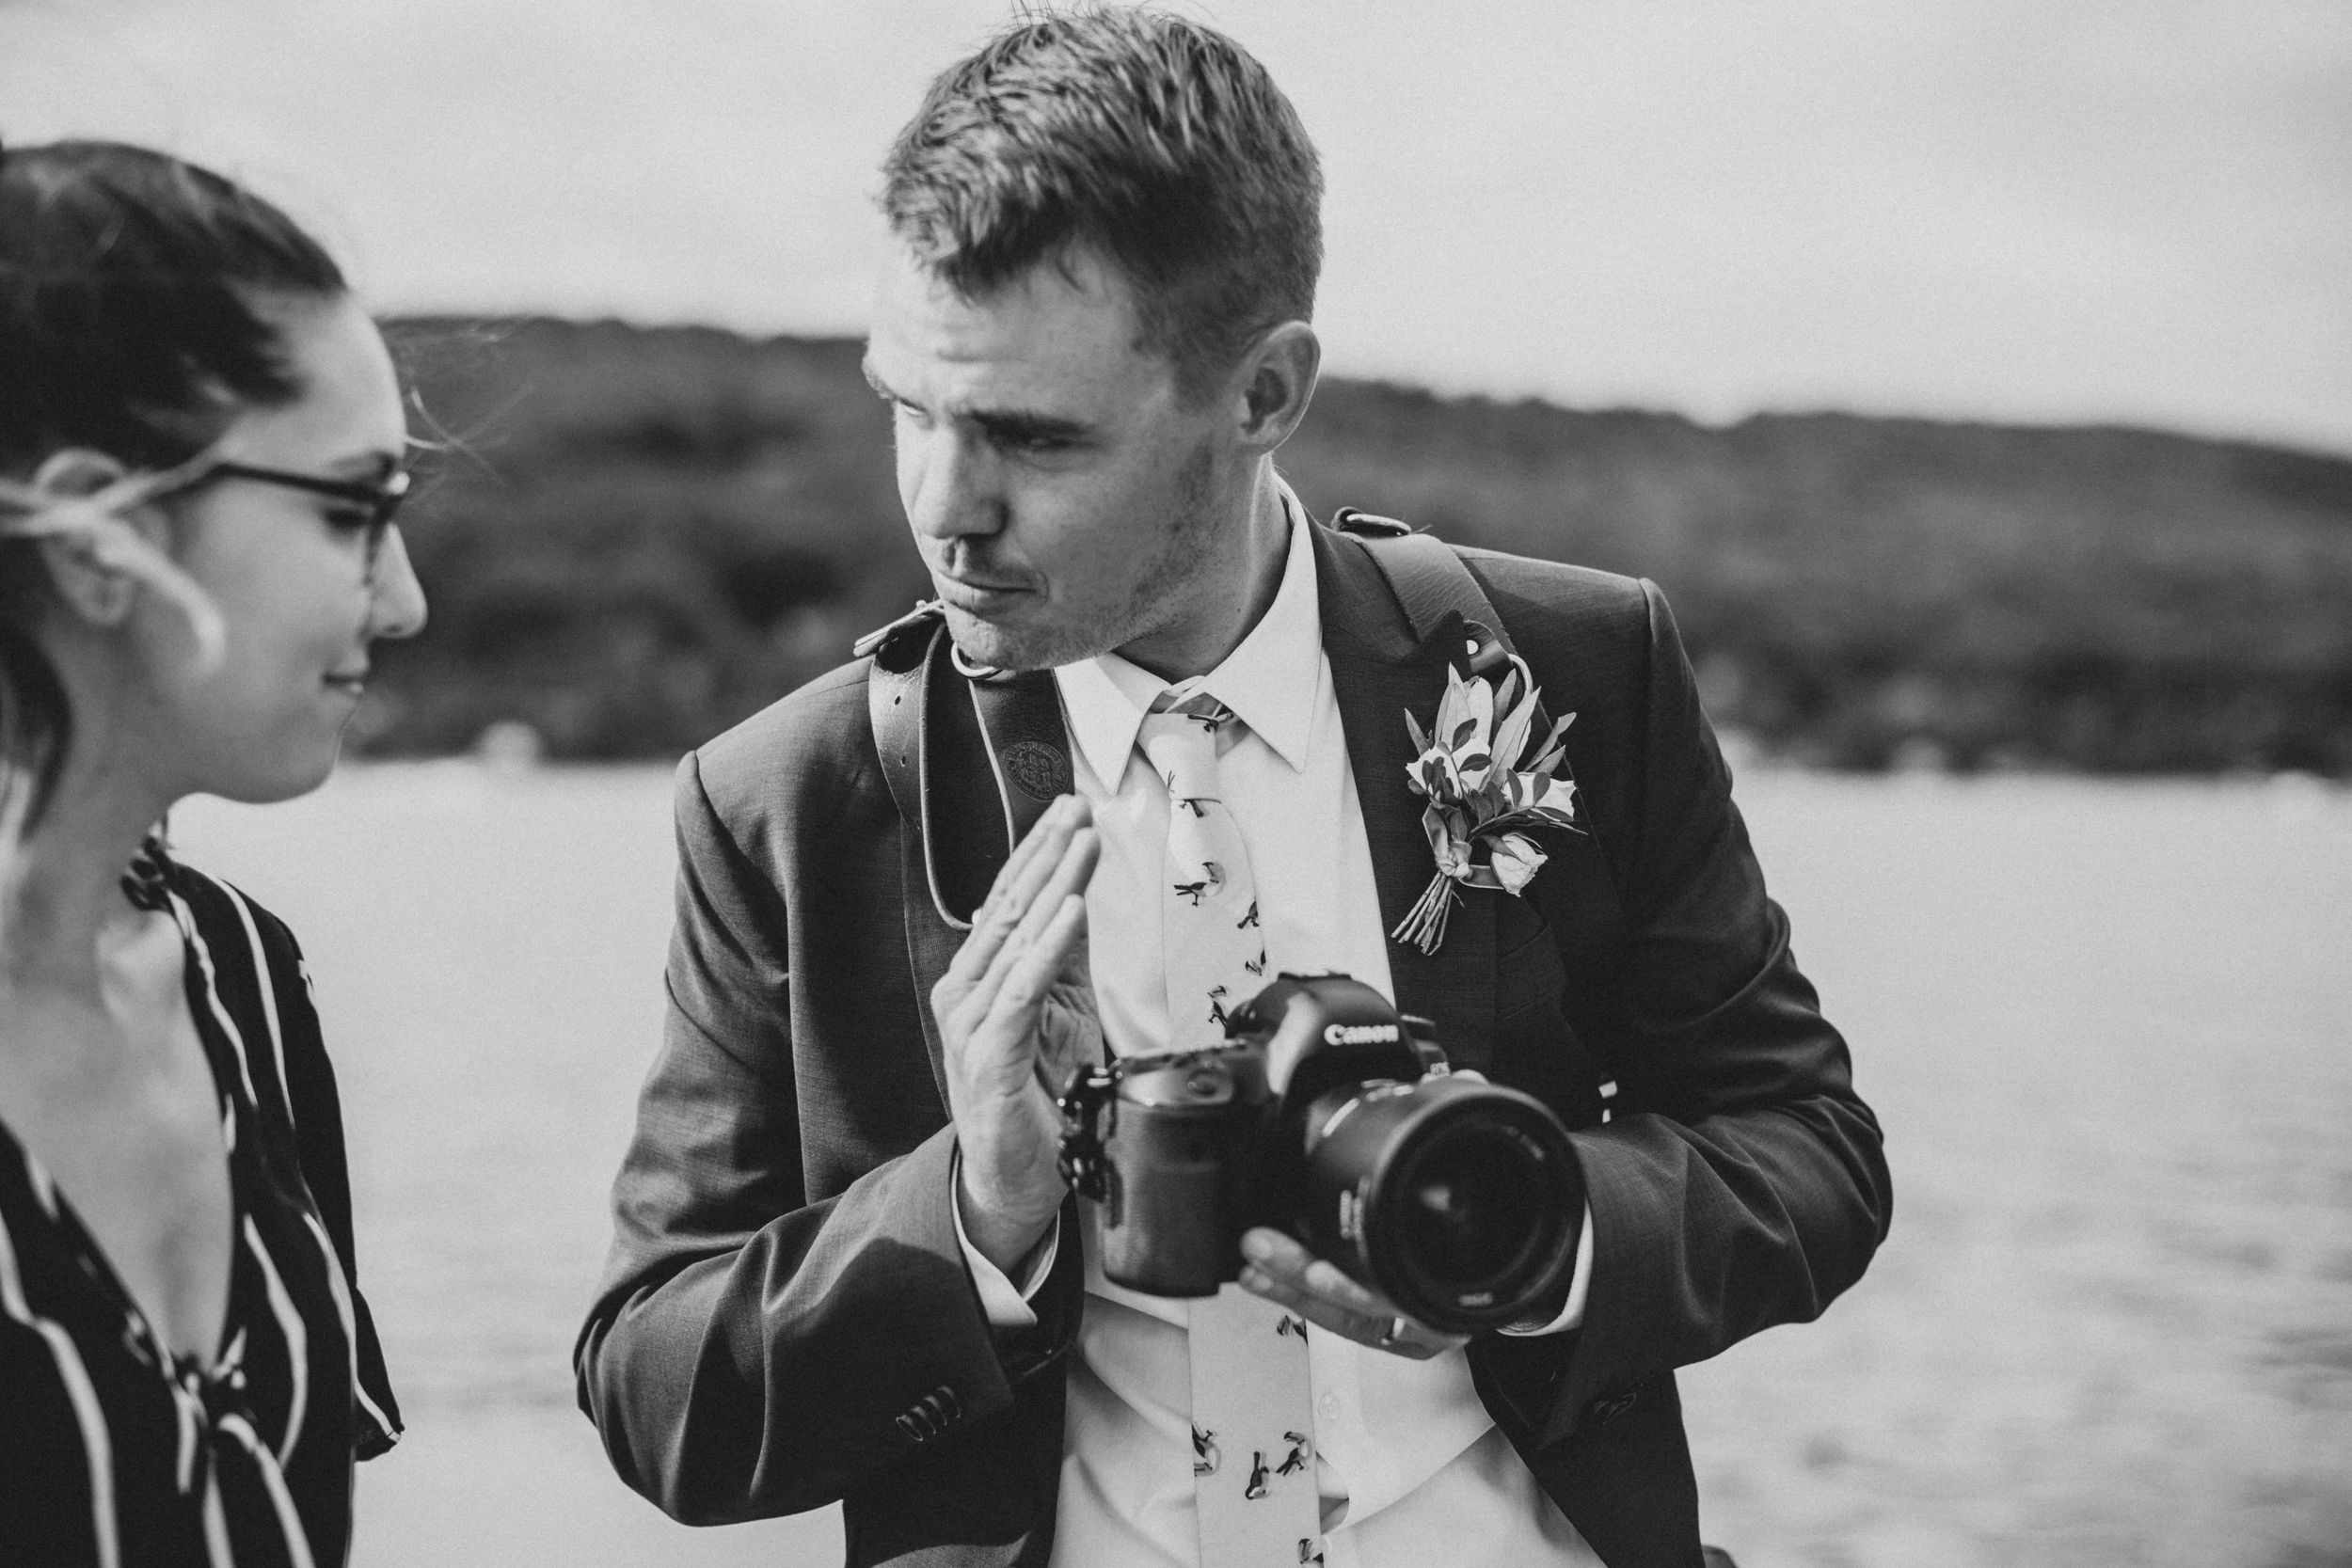 Behind the scene with a photo-passionate groom